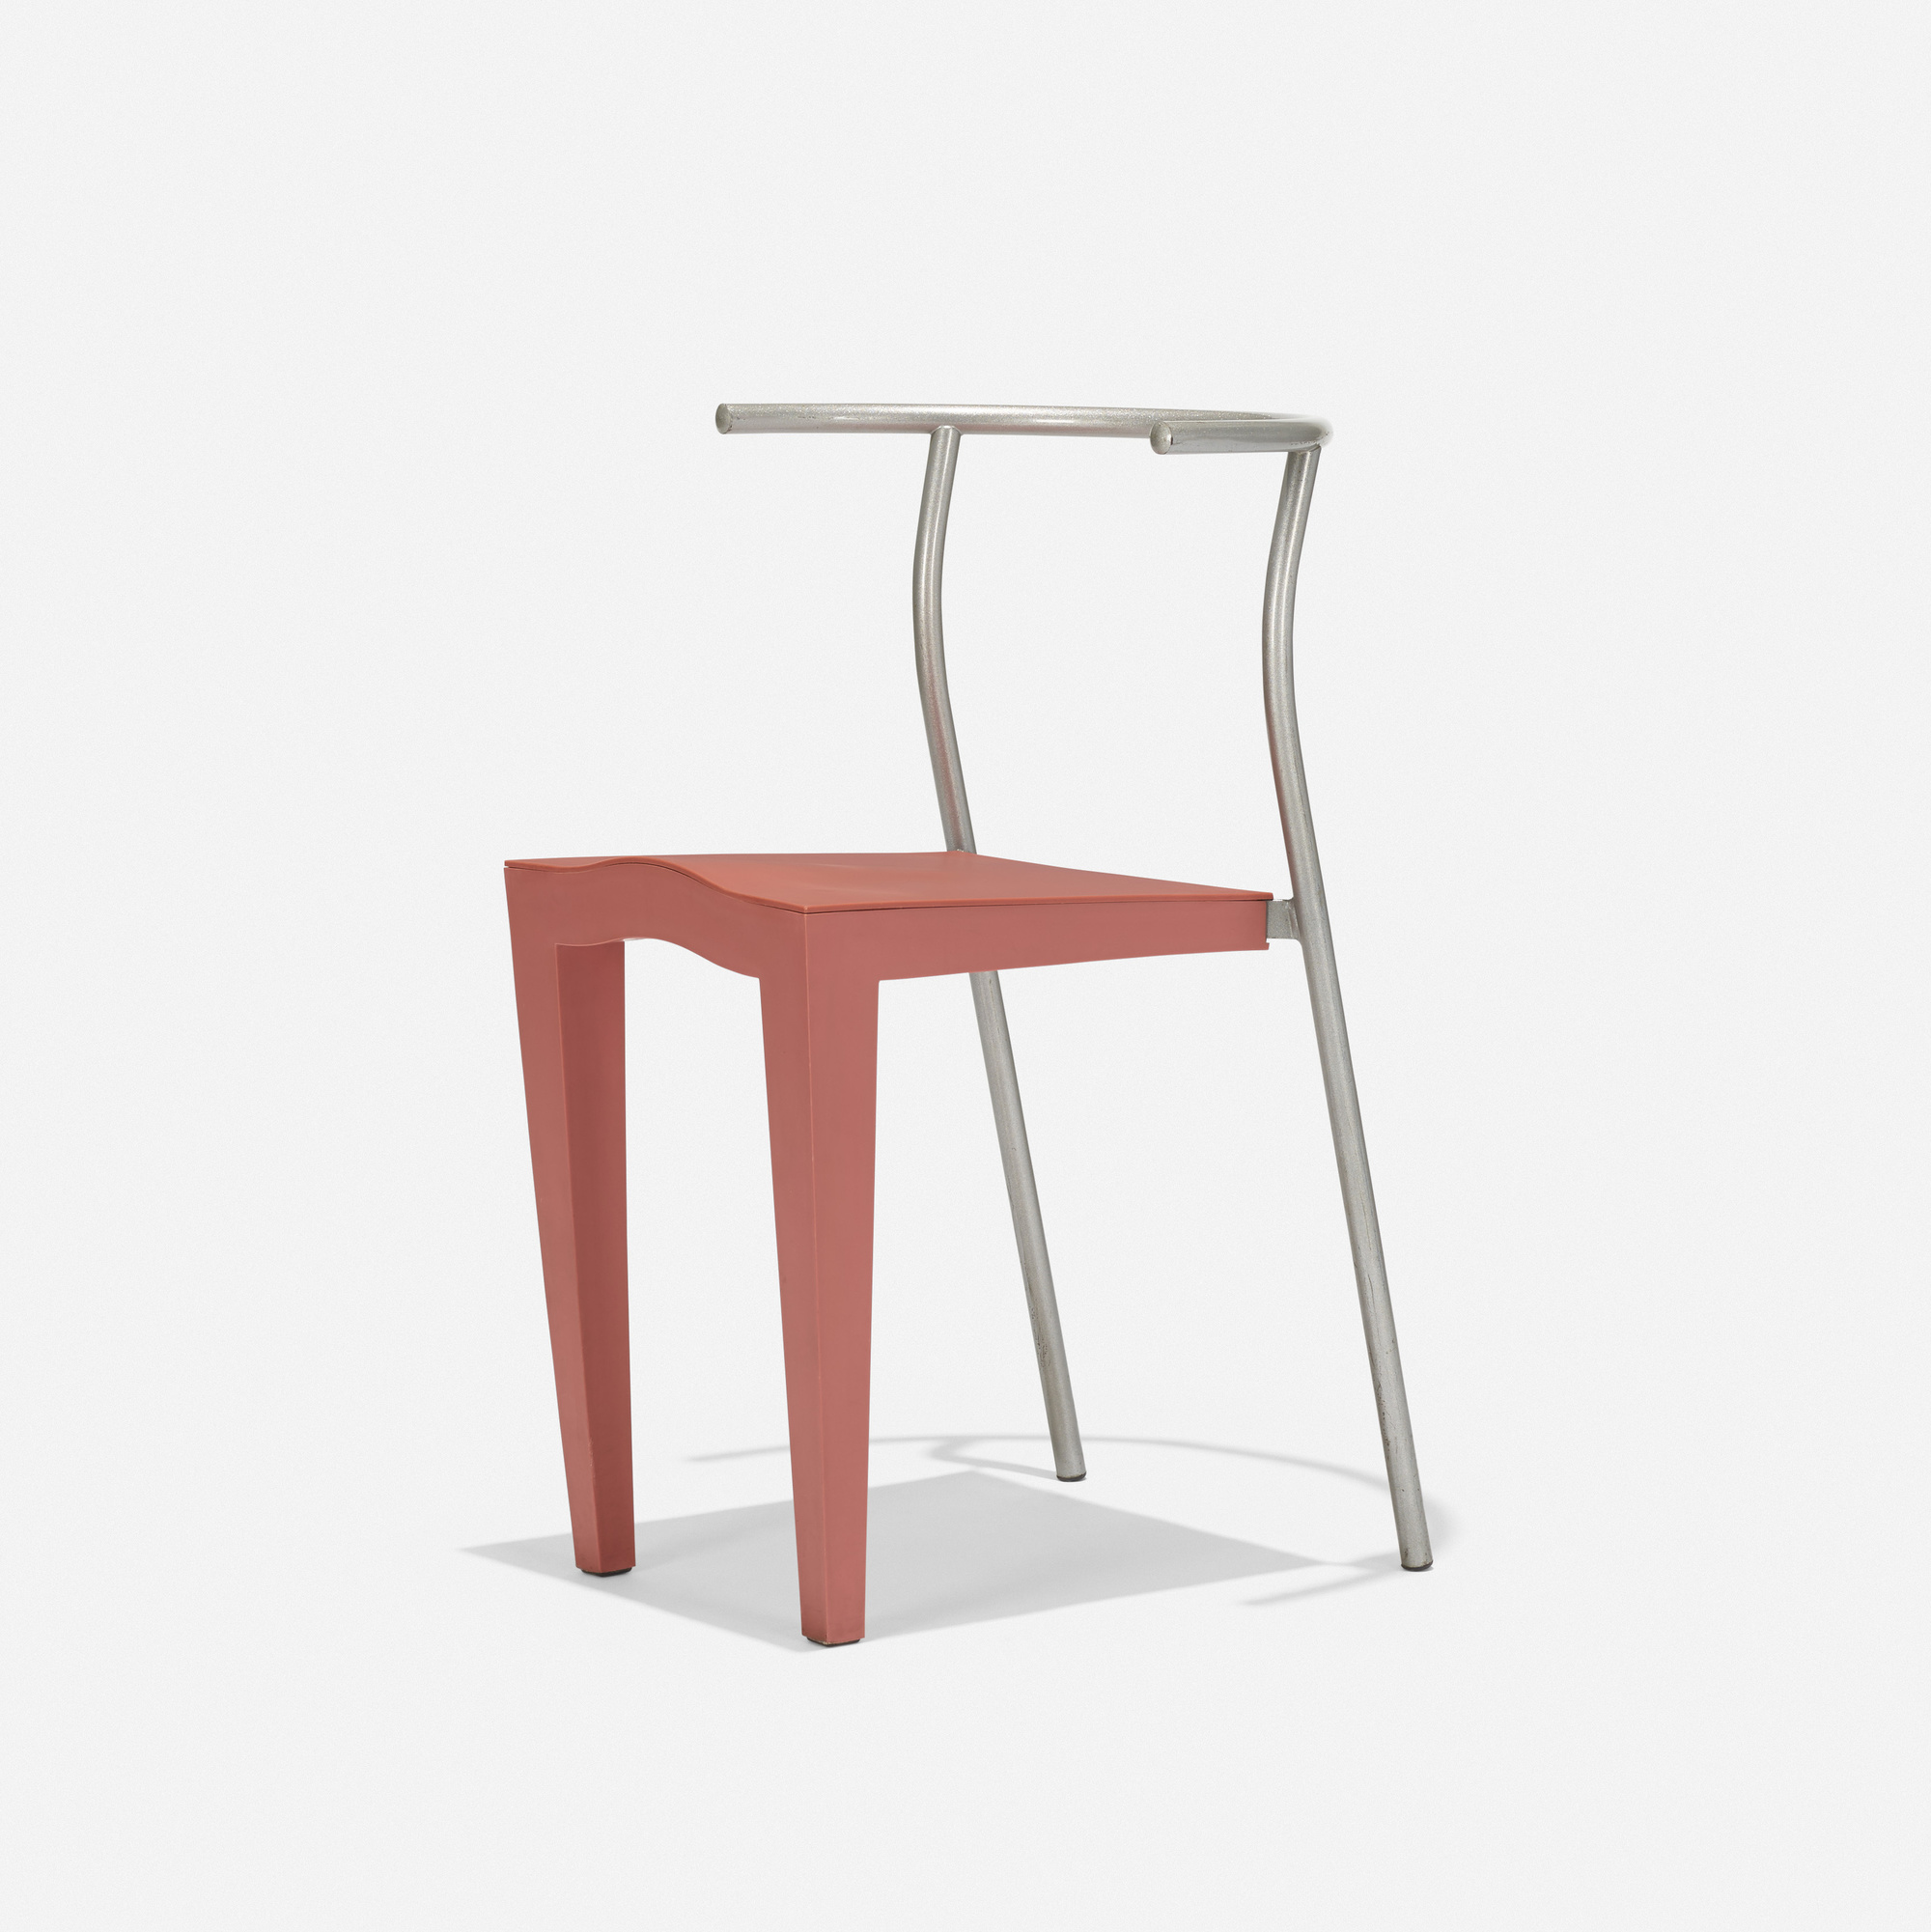 336: Philippe Starck / Dr. Glob chair (1 of 4)